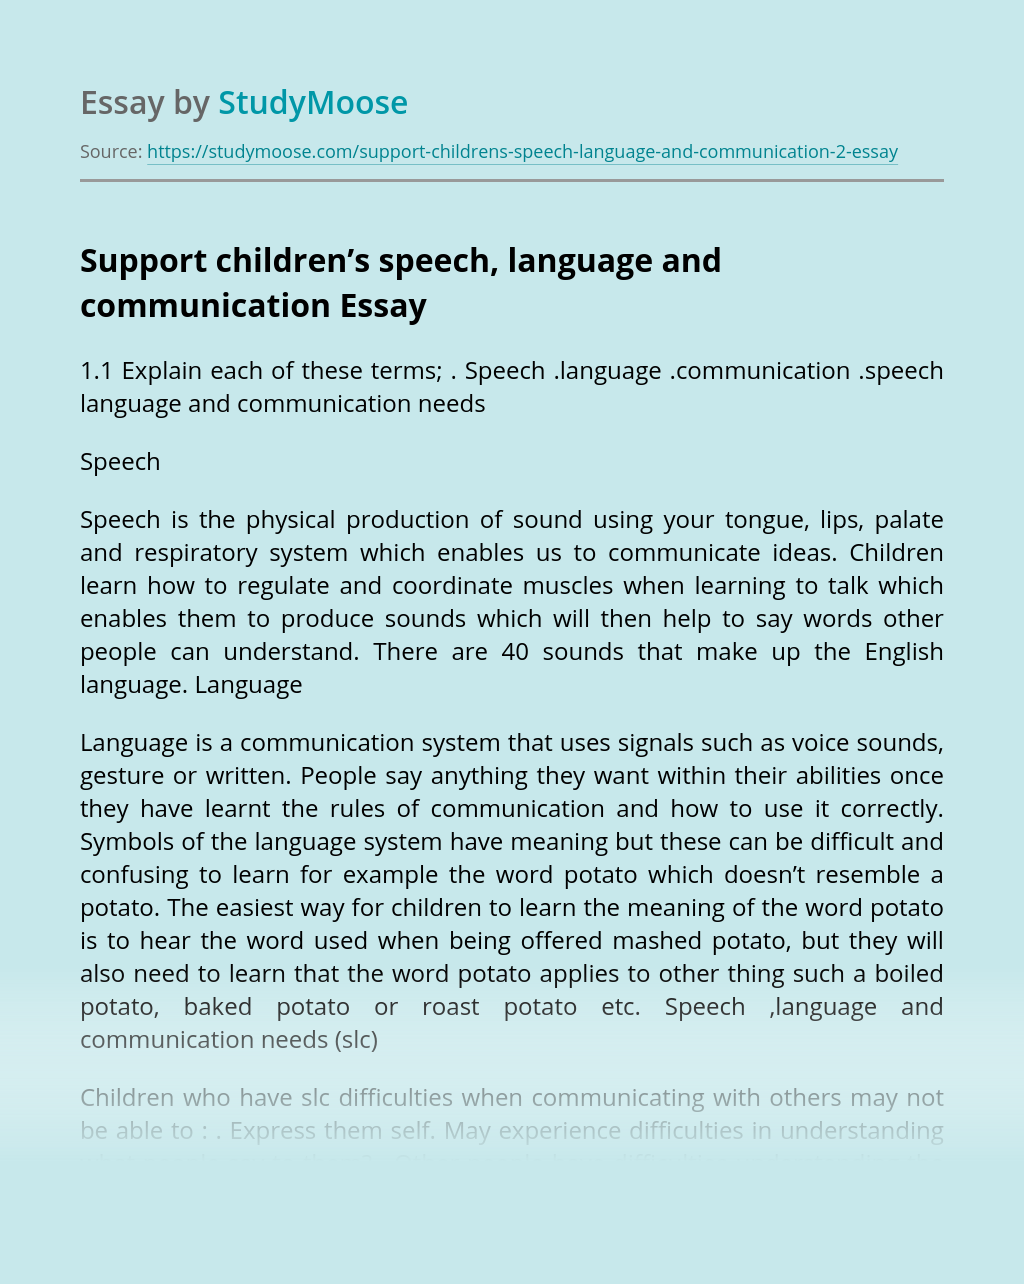 Support children's speech, language and communication